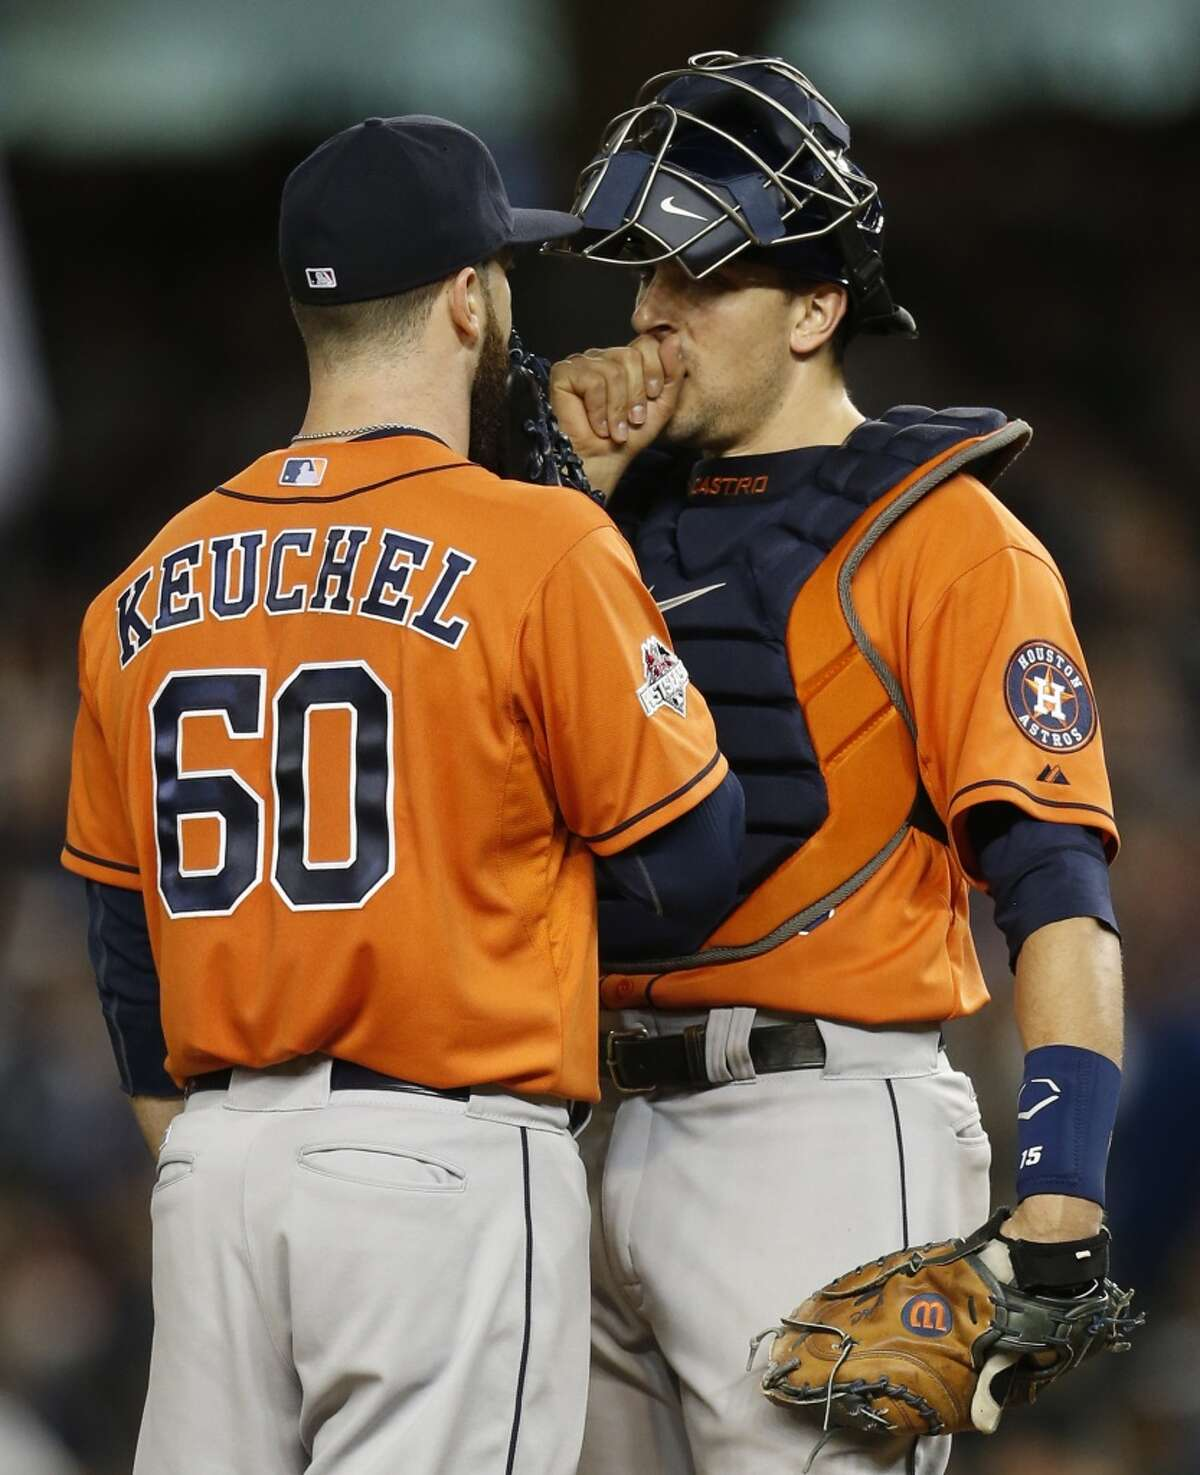 Houston Astros starting pitcher Dallas Keuchel (60) talks to catcher Jason Castro during sixth inning of the American League Wild Card game against the New York Yankees at Yankee Stadium on Tuesday, Oct. 6, 2015, in New York. ( Karen Warren / Houston Chronicle )